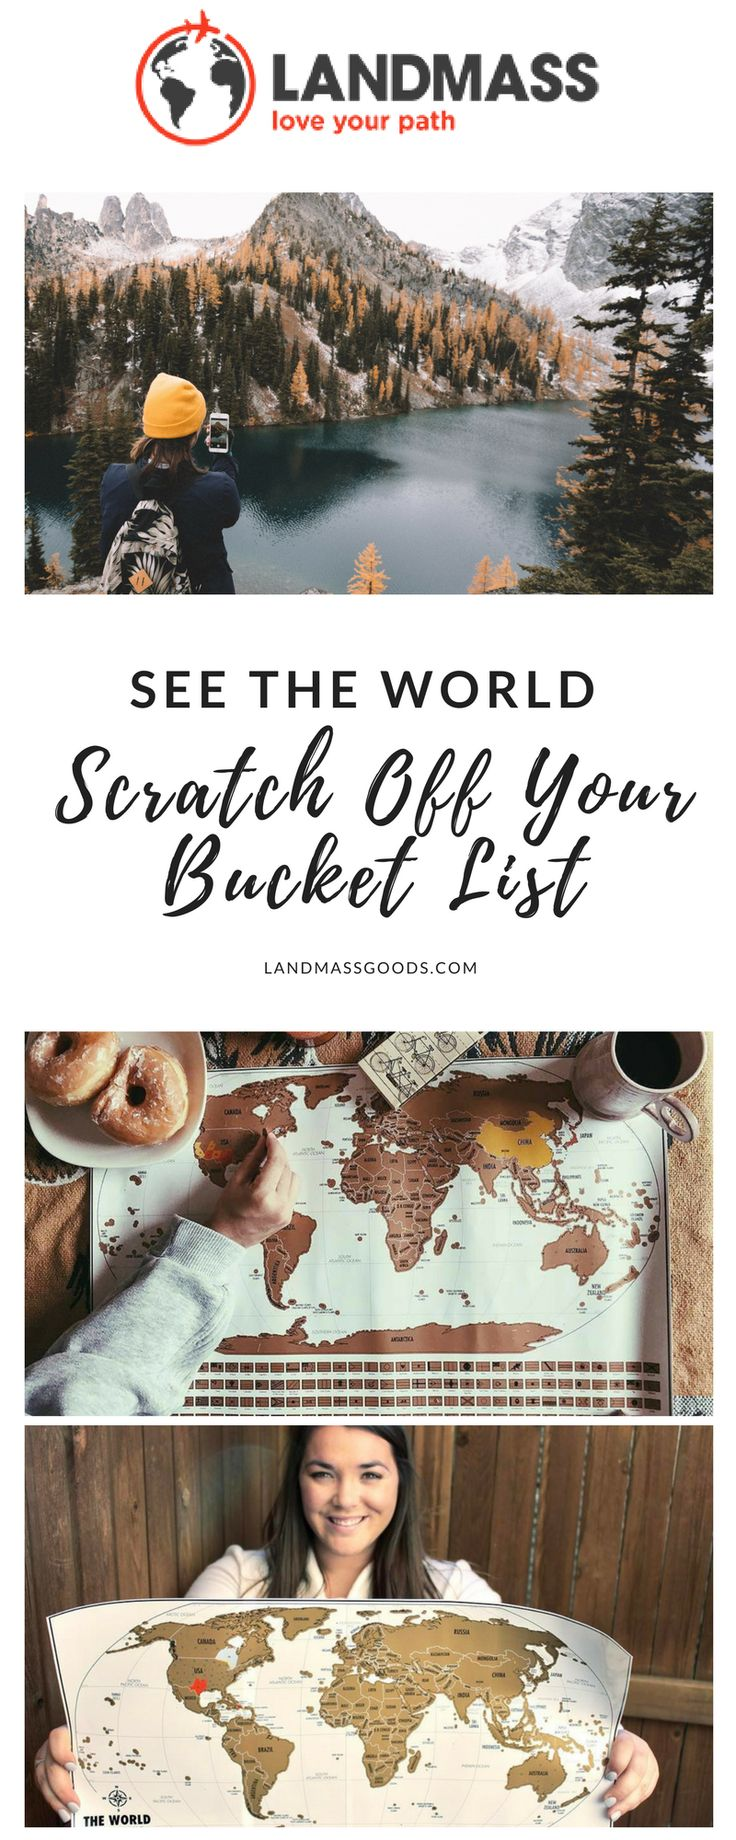 Scratch off your bucket list and track your travels around the world with the Landmass Travel Tracker Map. Reveal vibrant colors which tell the unique story of your adventures. #landmass #travel #travelmore #traveltracker #seetheworld #explore #bucketlist #maps